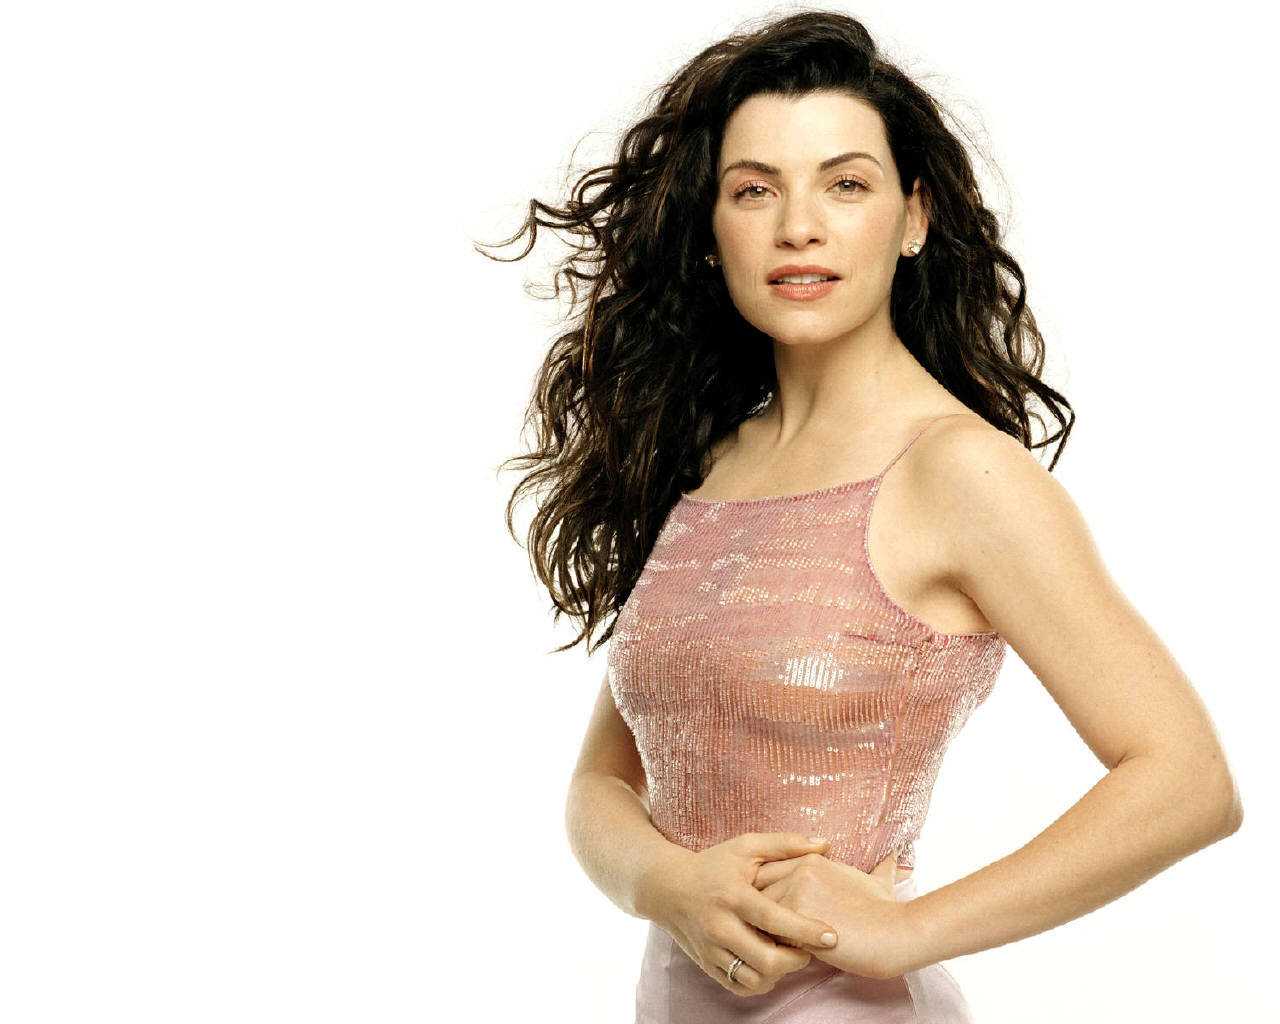 http://images1.fanpop.com/images/image_uploads/Julianna-julianna-margulies-1002364_1280_1024.jpg